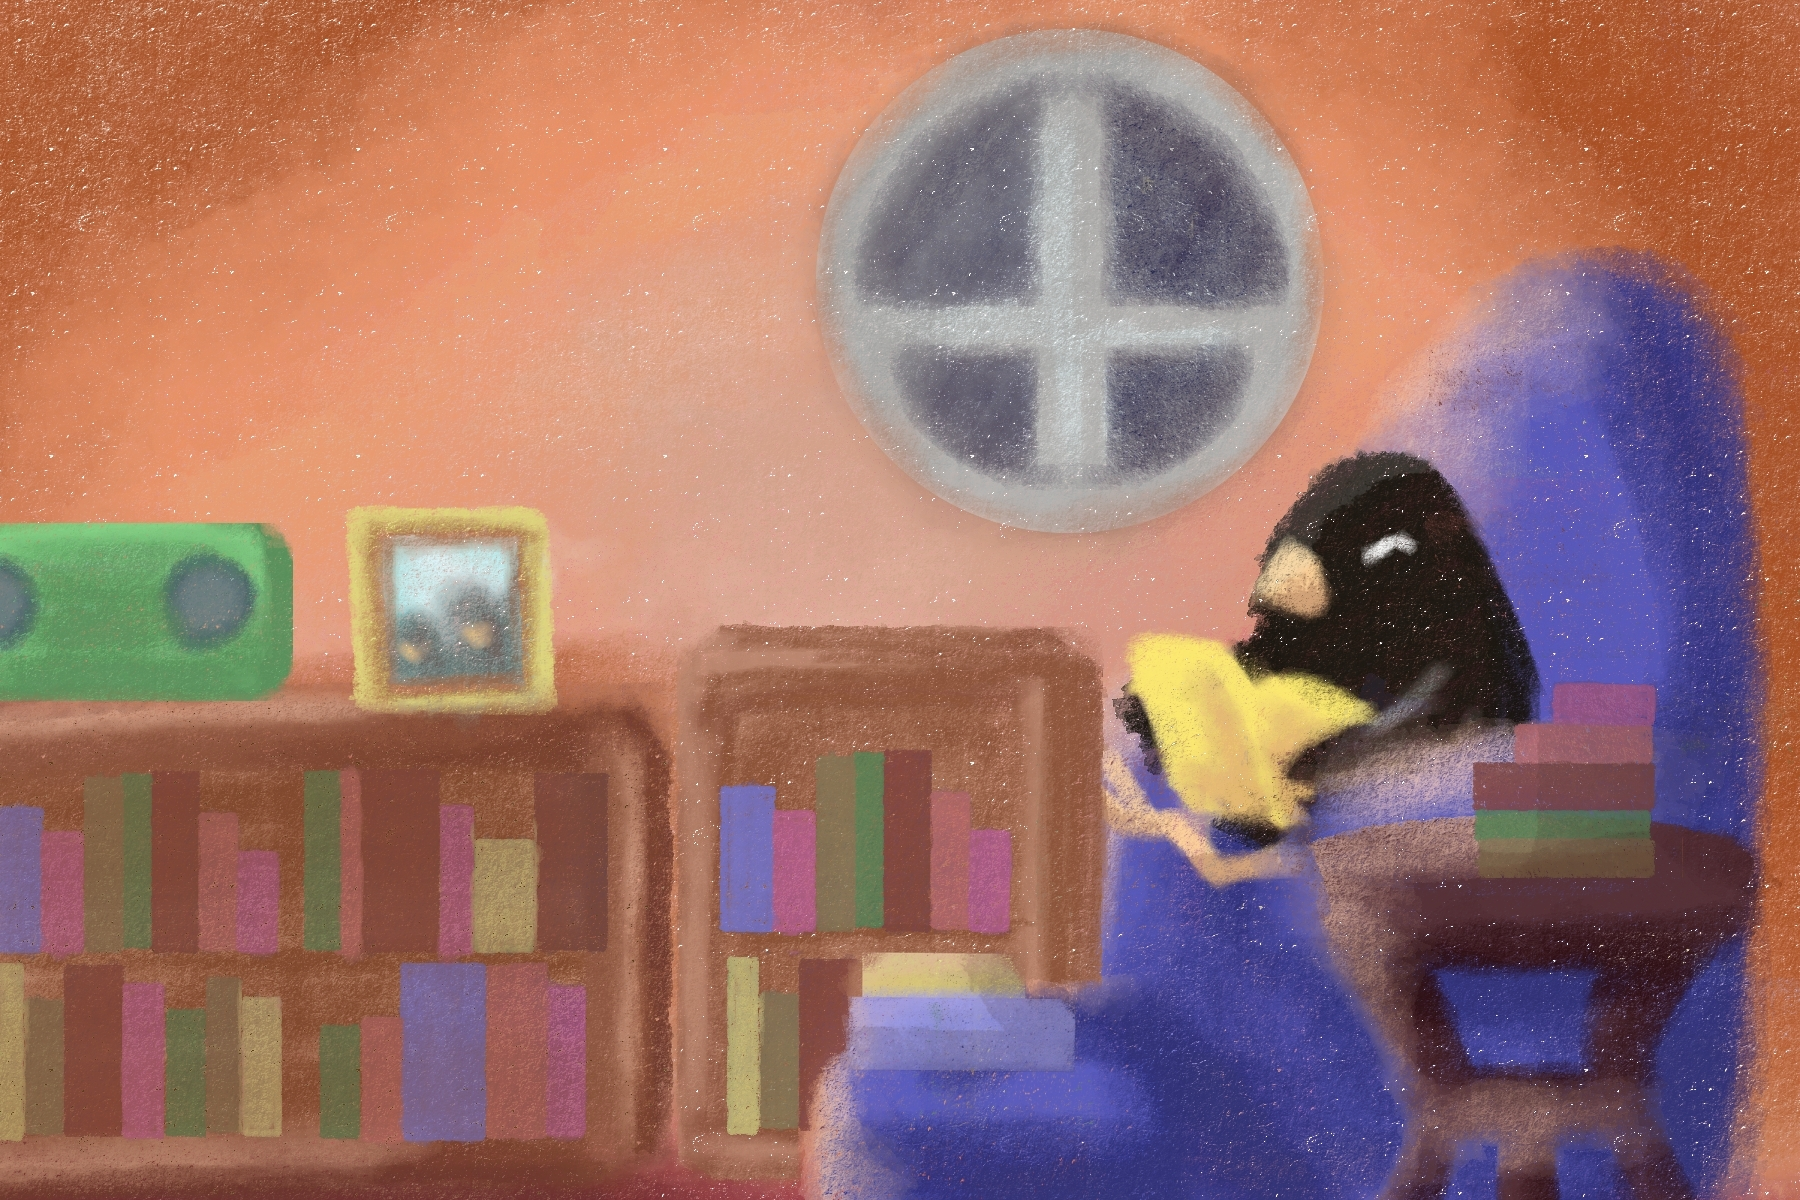 Illustration by Elizabeth Wong of a penguin rereading a book indoors